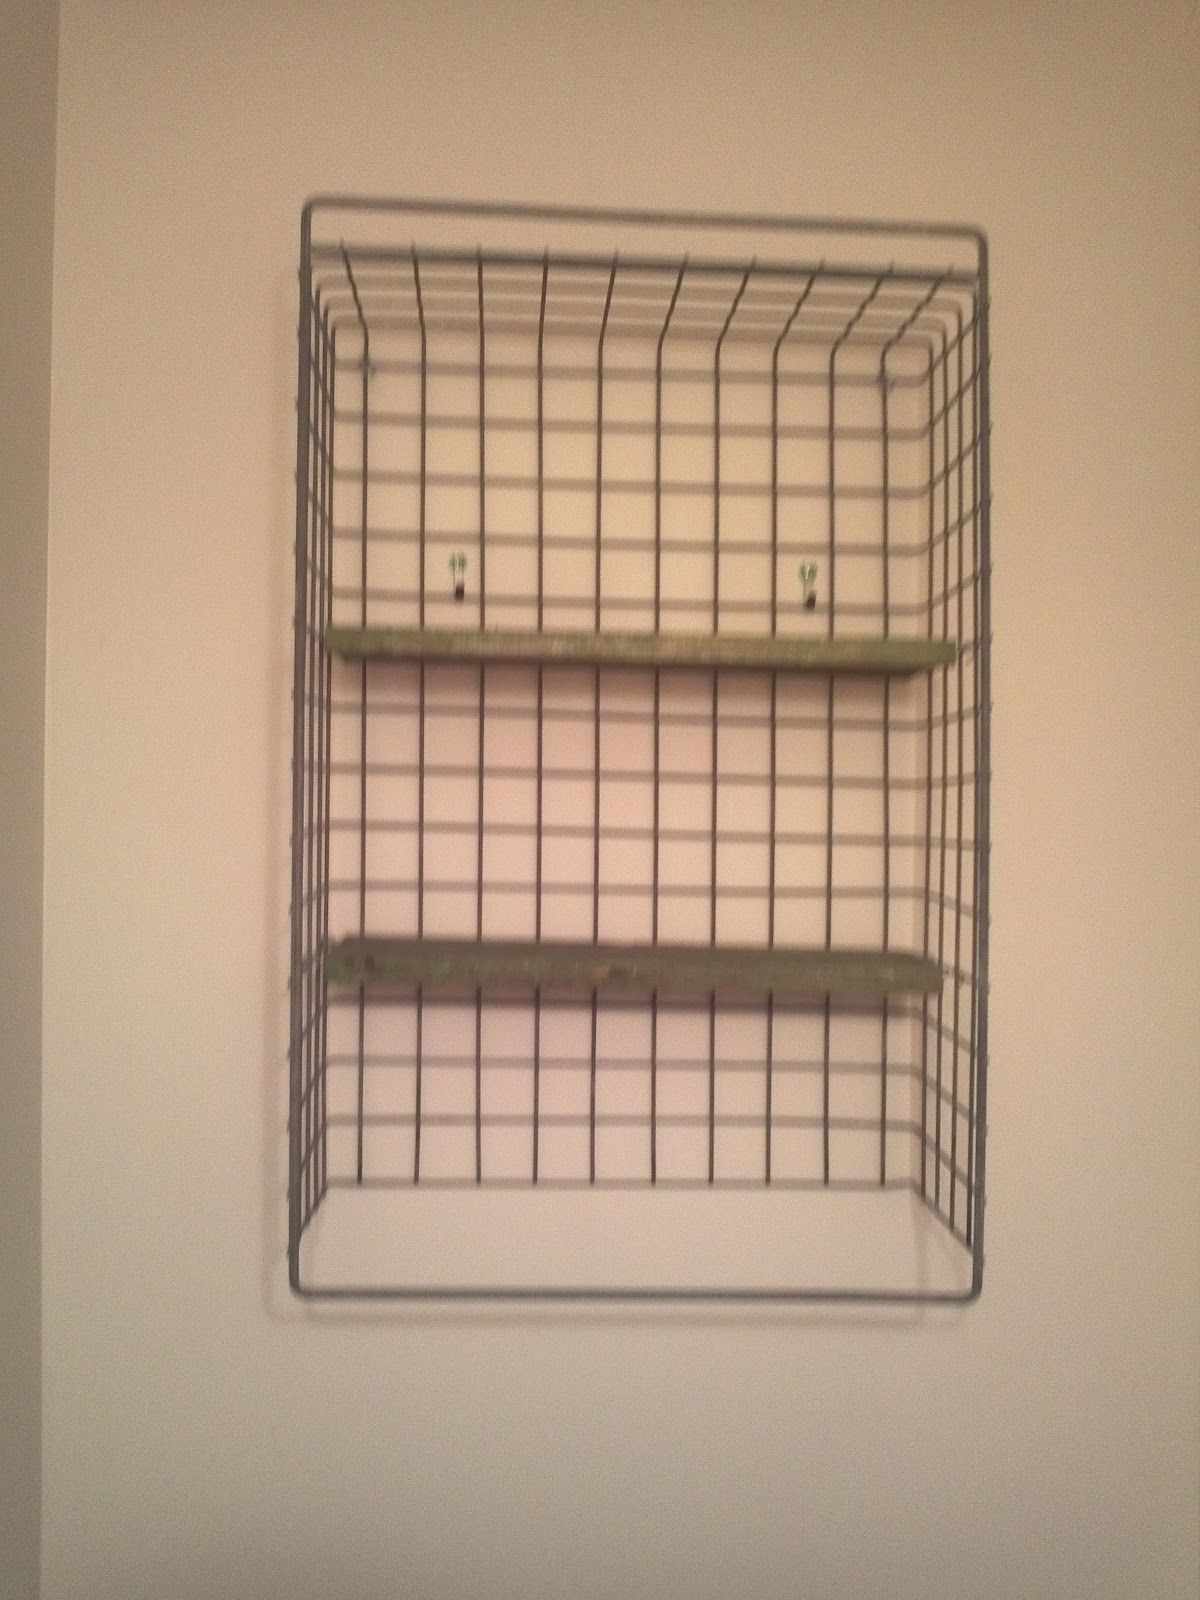 how to hang wire basket on wall Google Search